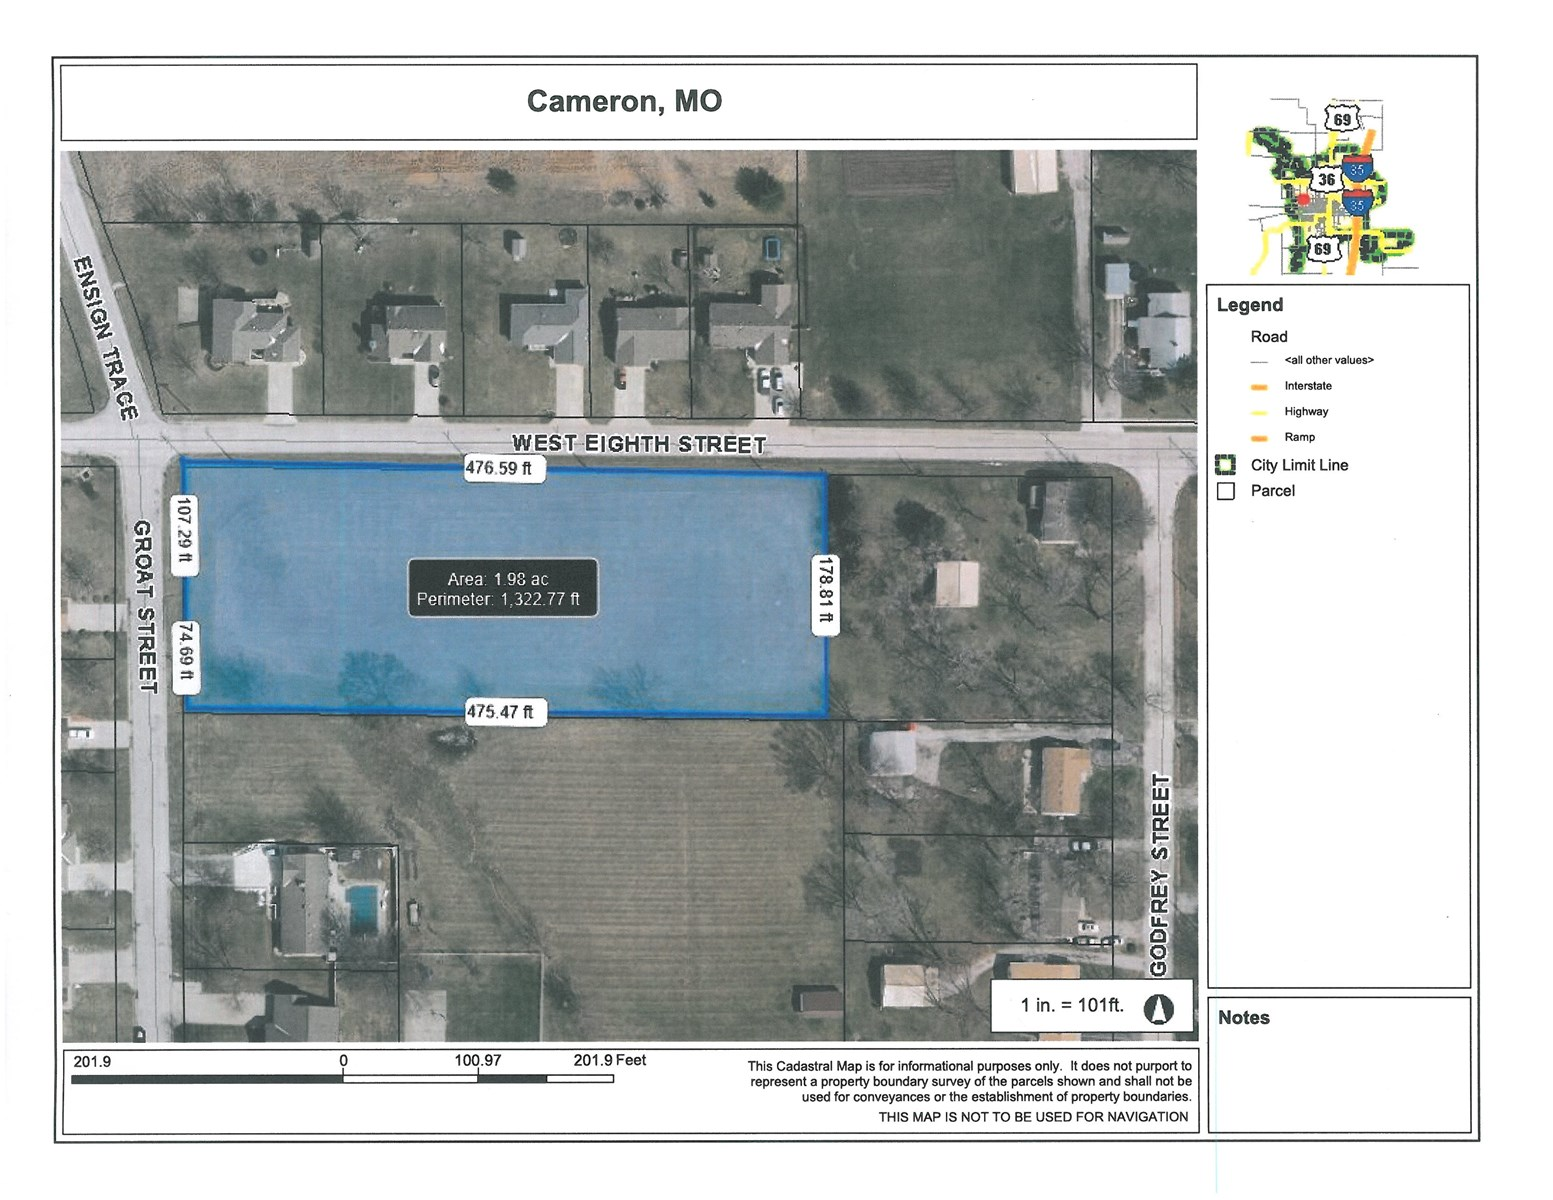 CAMERON MO 2 ACRES ZONED RESIDENTIAL FOR SALE